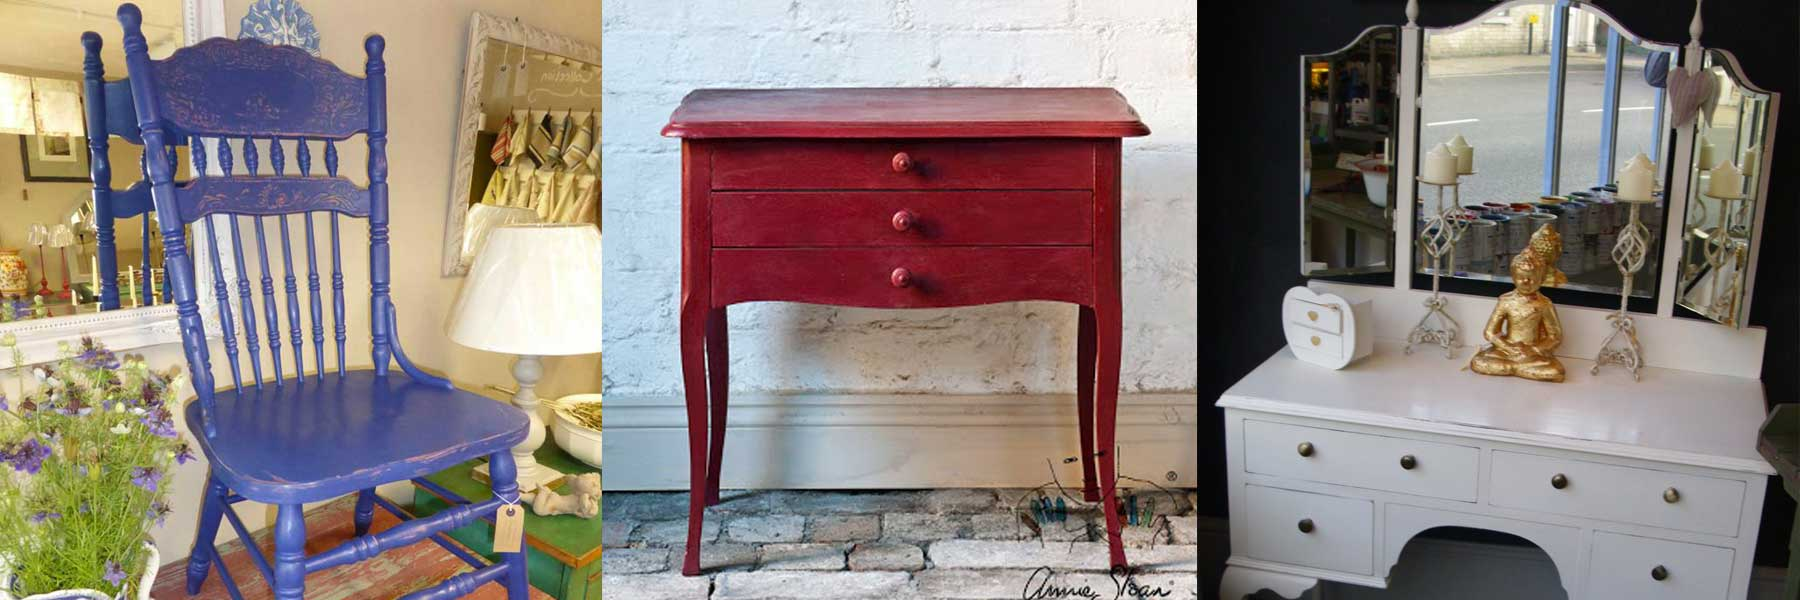 Painted Furniture Shabby Chic Bury St Edmunds Ipswich Suffolk Diss Antique Rustic Chalk Paint